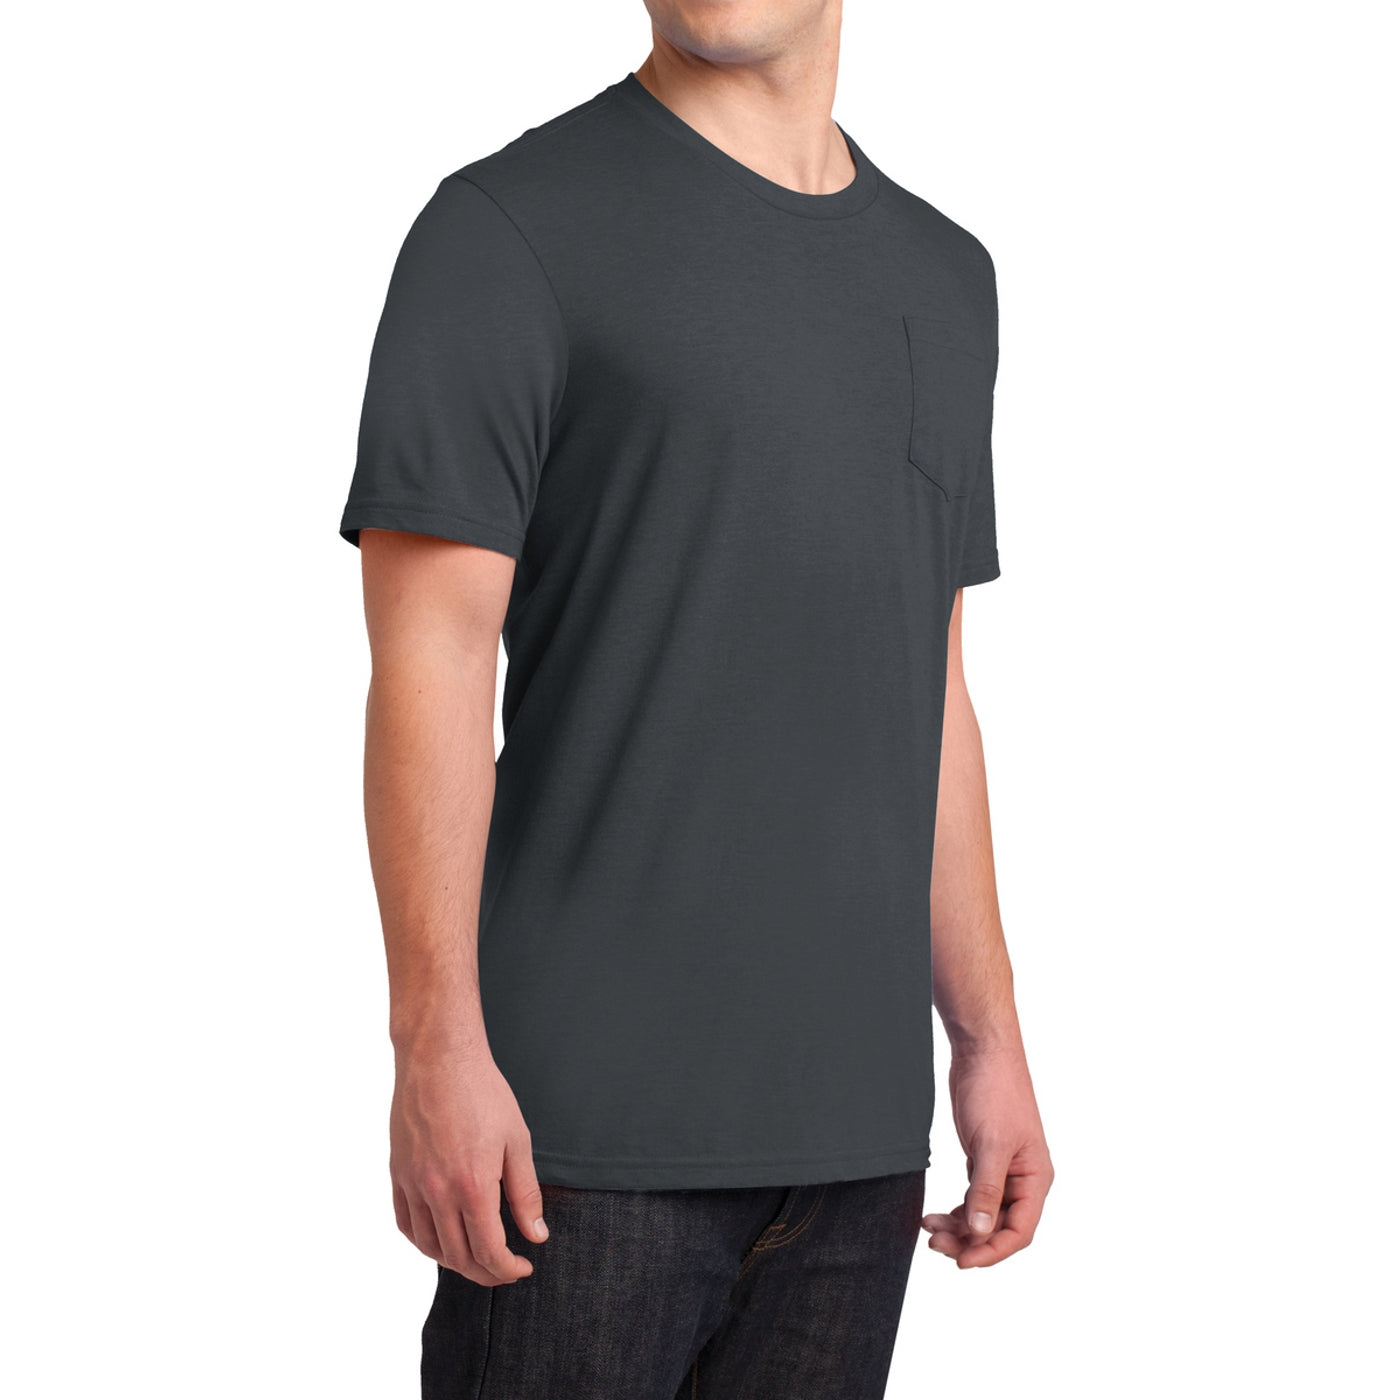 Men's Young Very Important Tee with Pocket - Charcoal